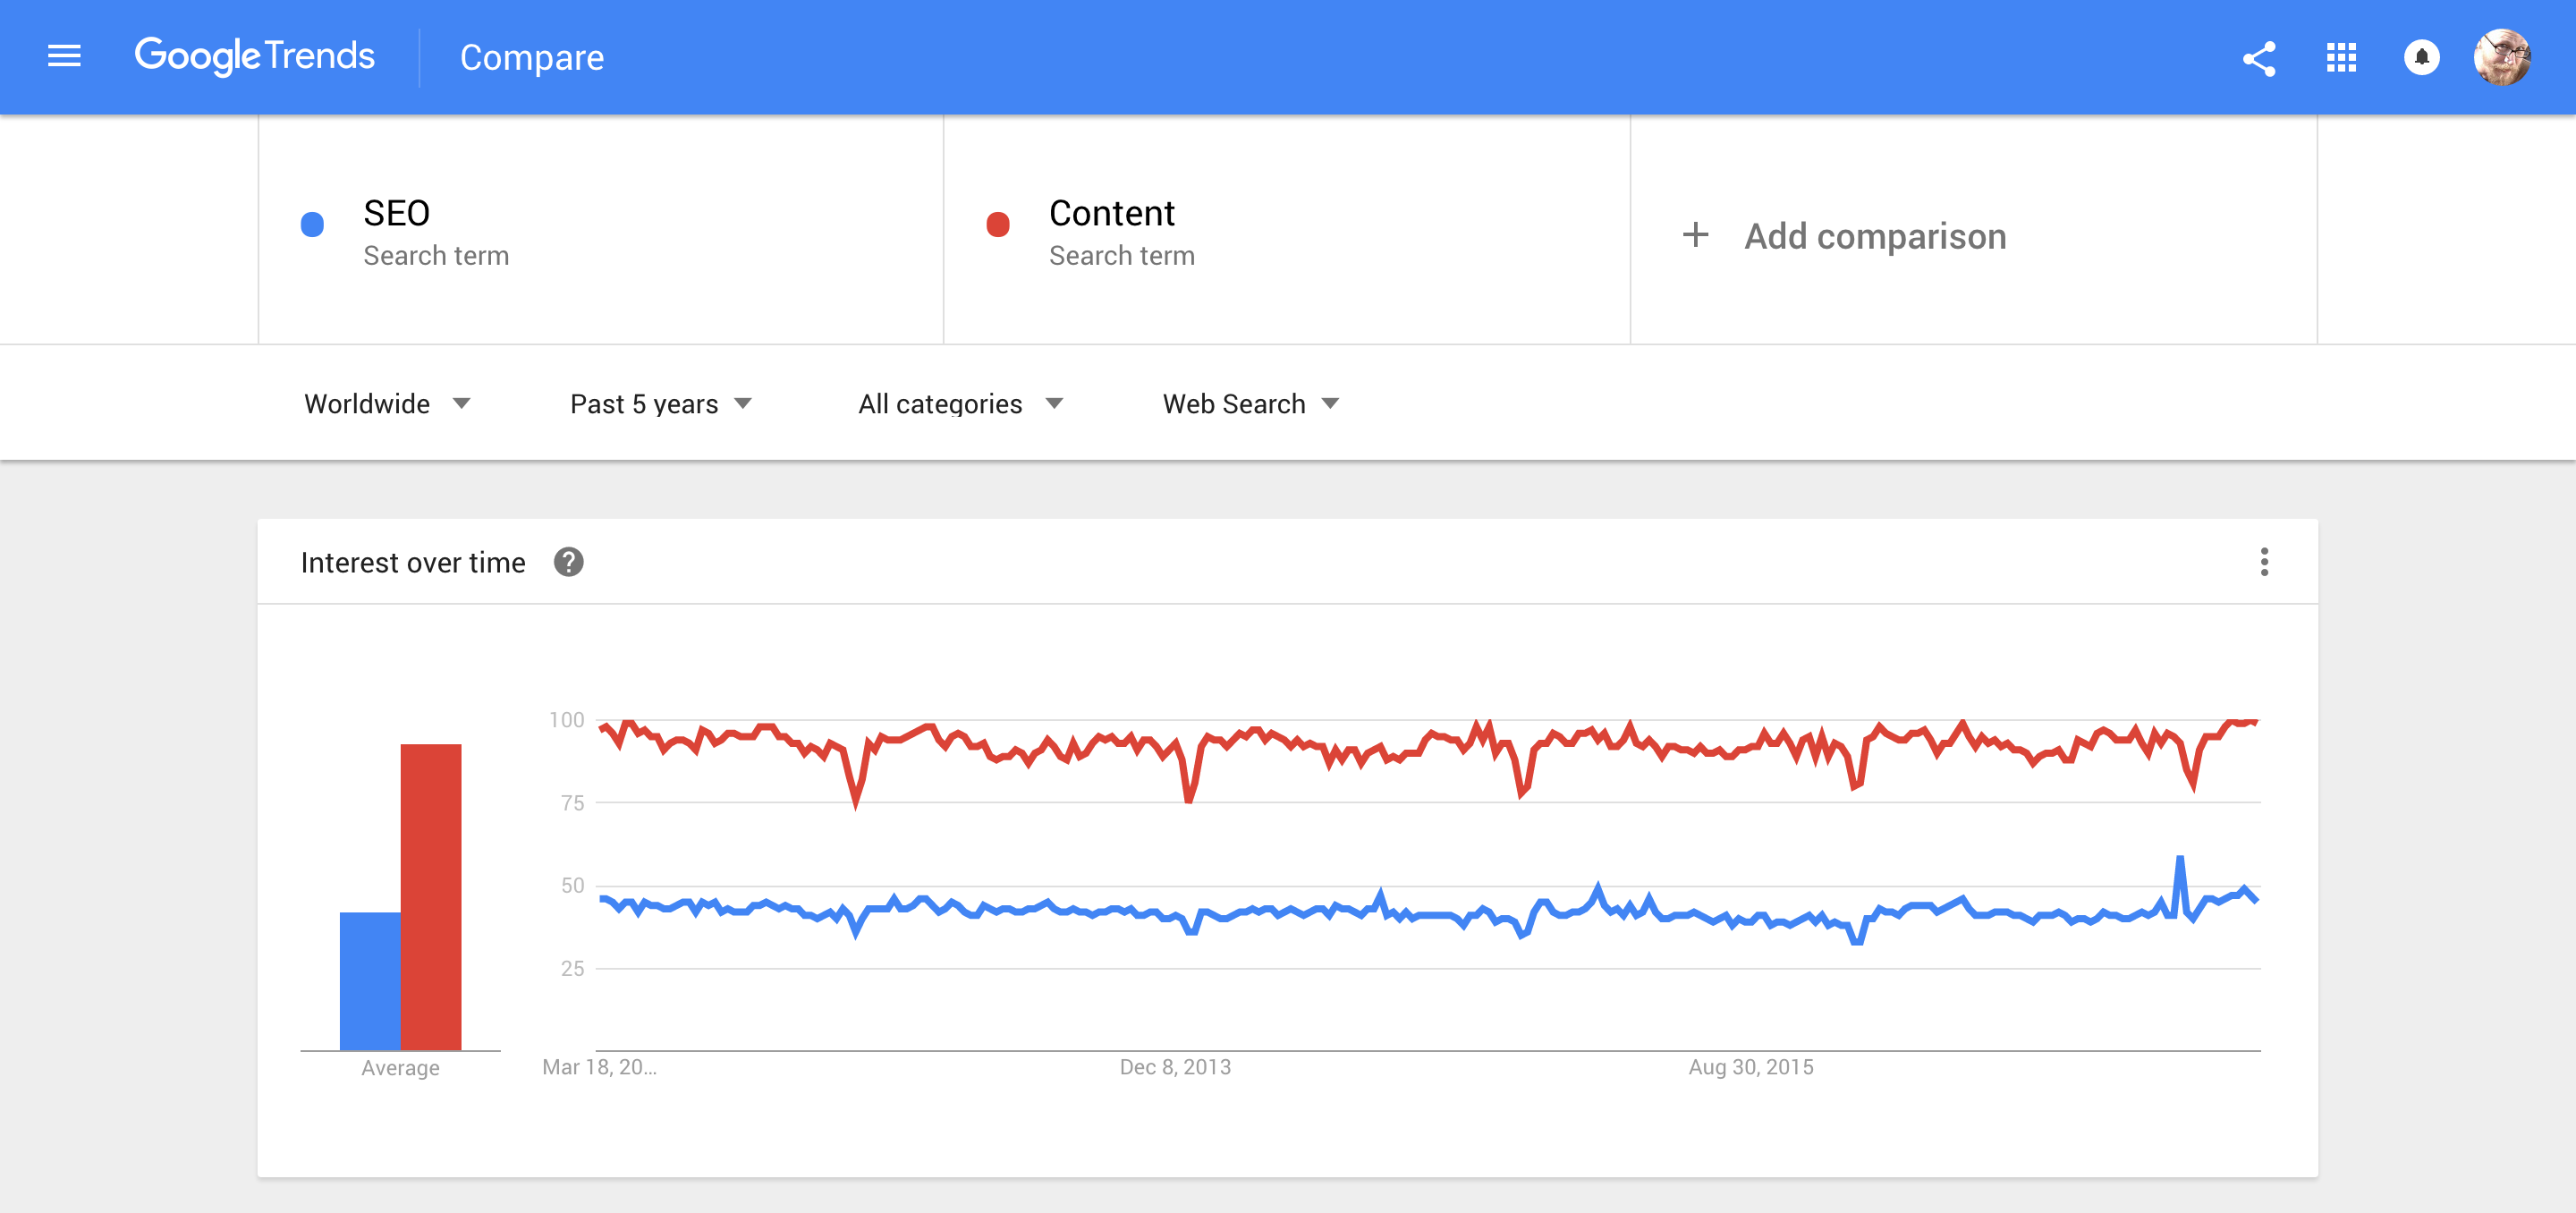 seo and content google trends